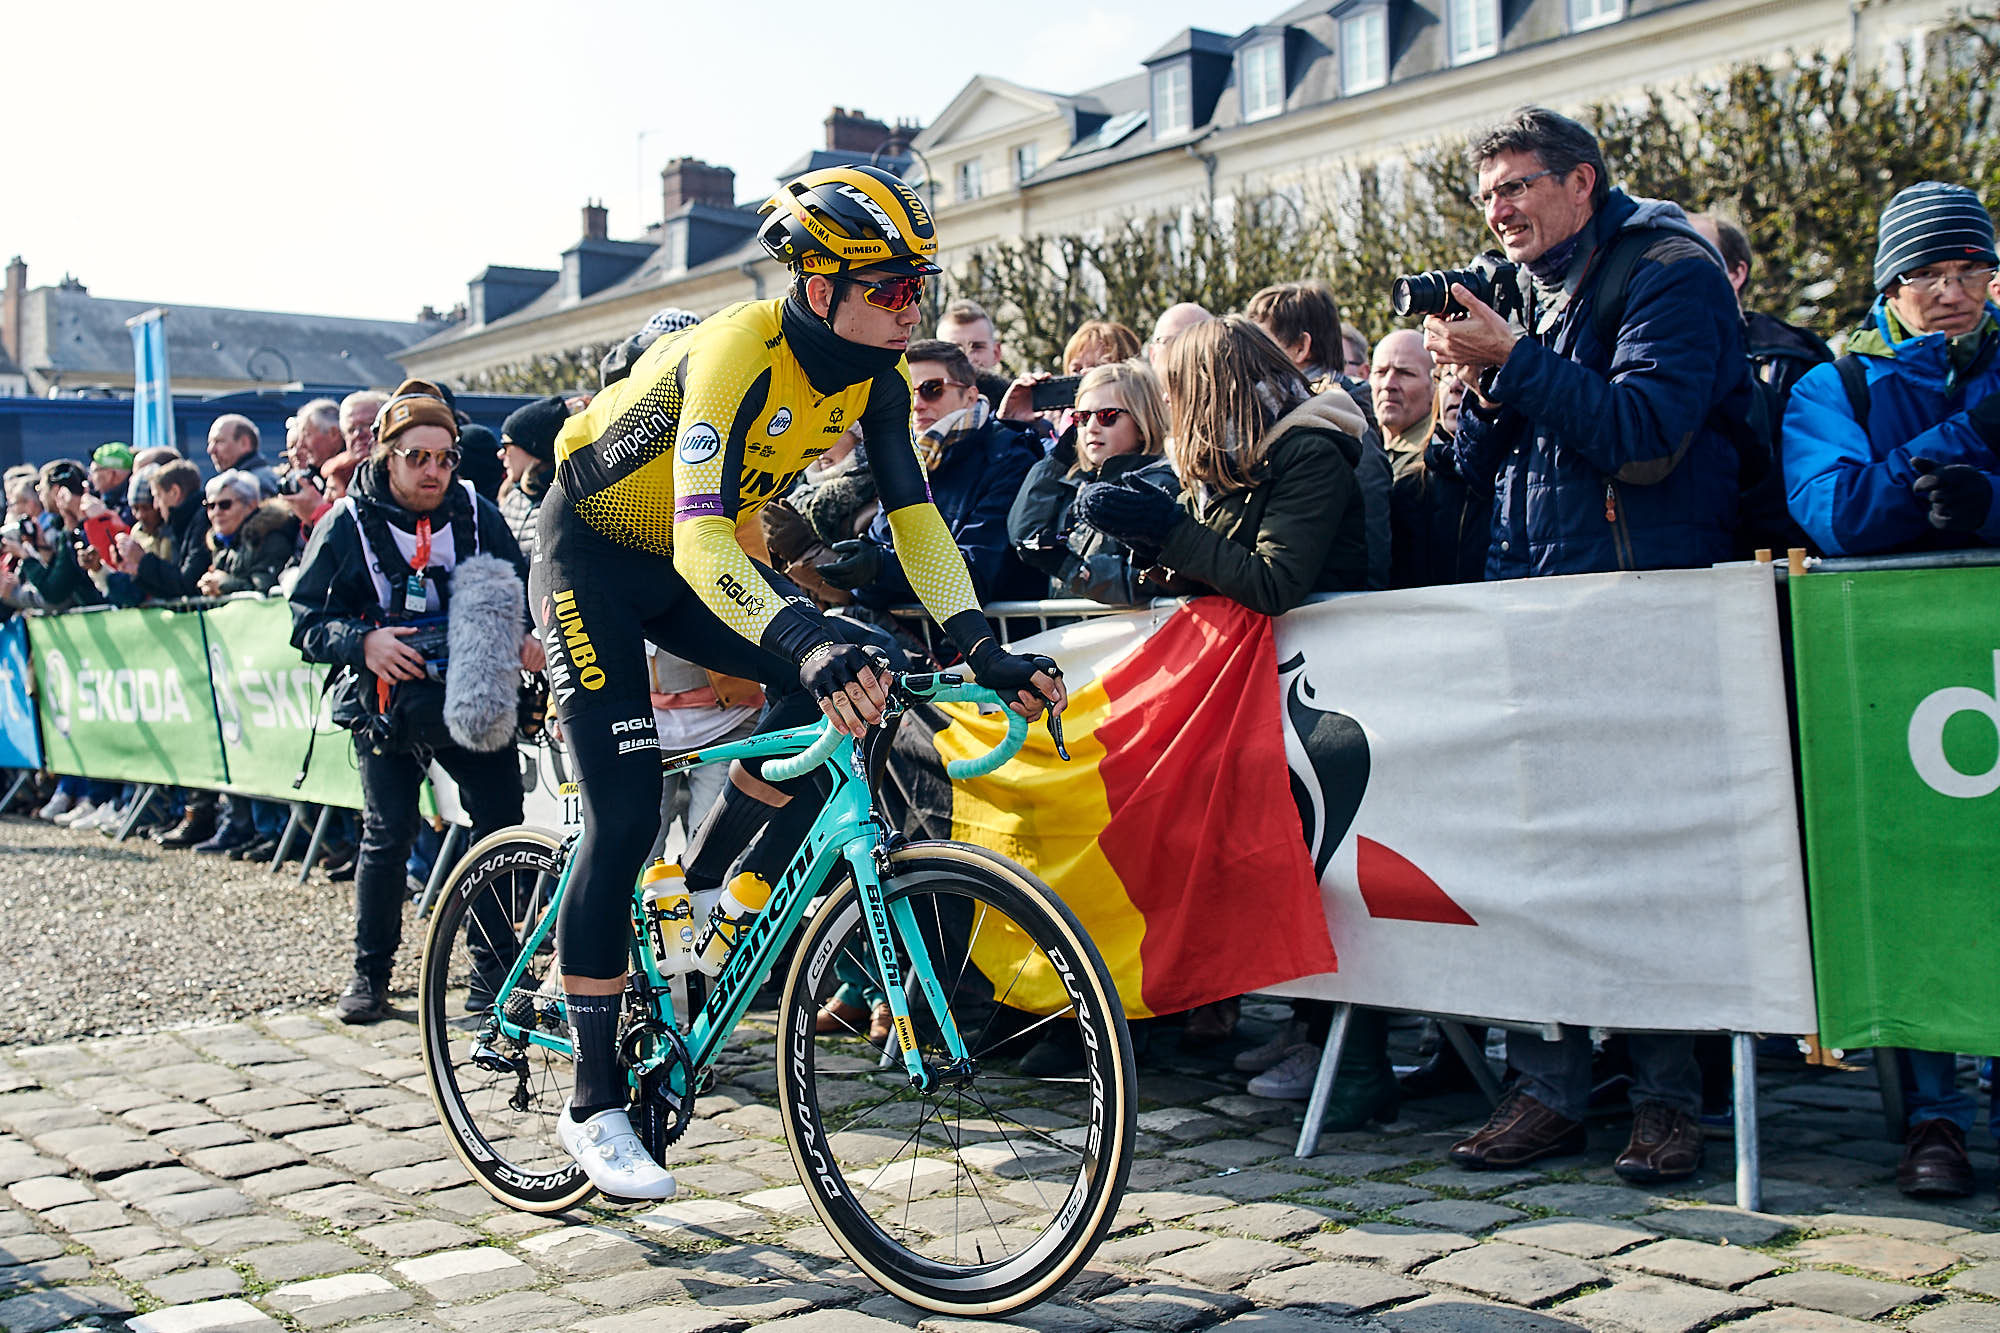 Wout van Aert just before the depart of Paris-Roubaix 2019